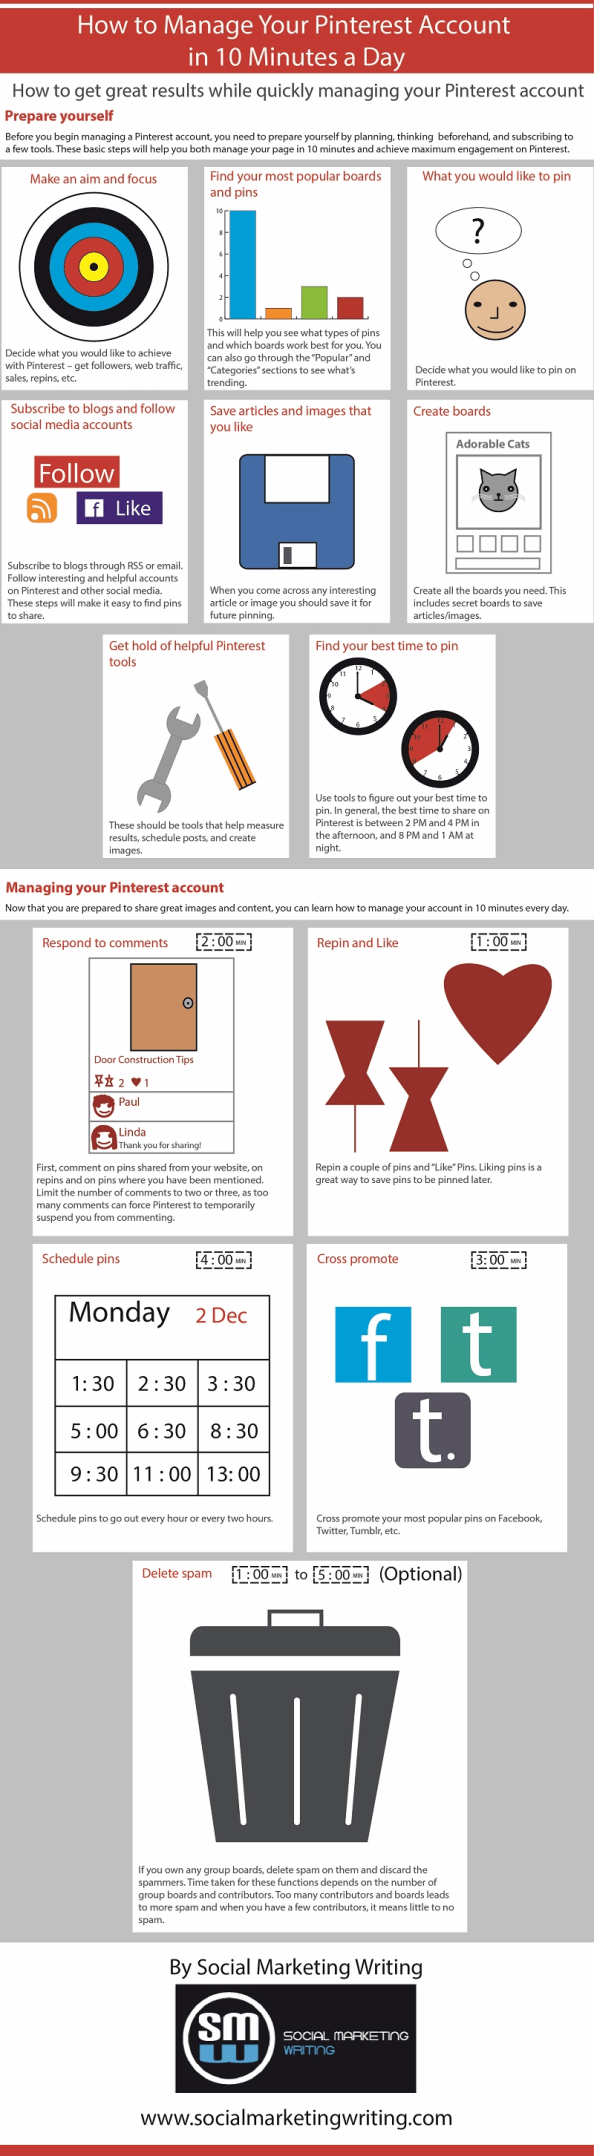 How-to-Manage-Your-Pinterest-Account-in-10-Minutes-a-Day